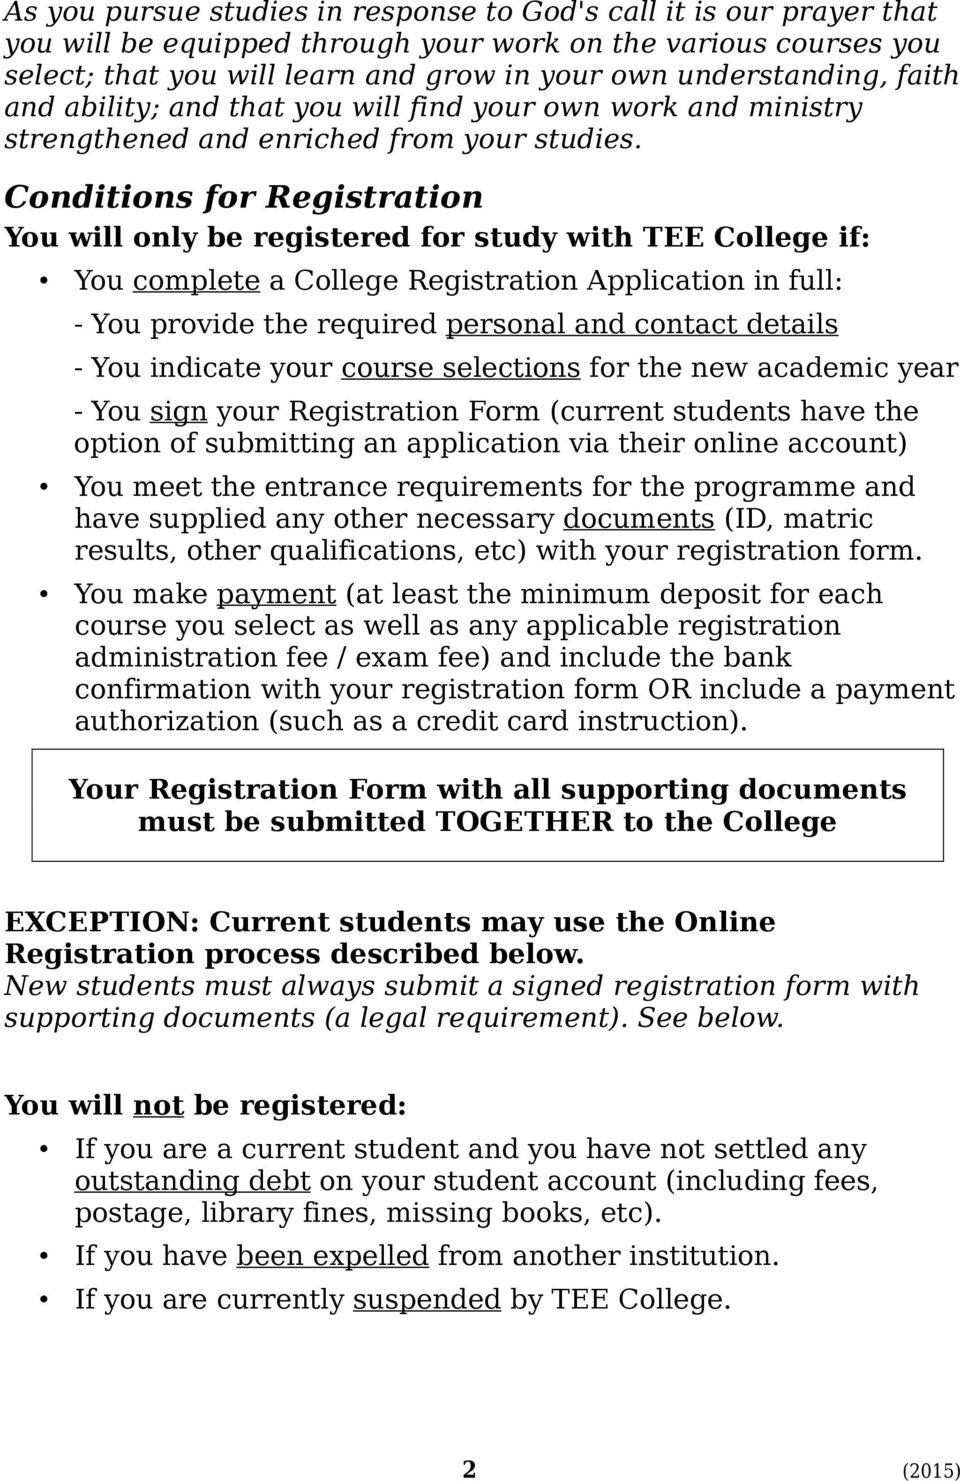 Conditions for Registration You will only be registered for study with TEE College if: You complete a College Registration Application in full: - You provide the required personal and contact details